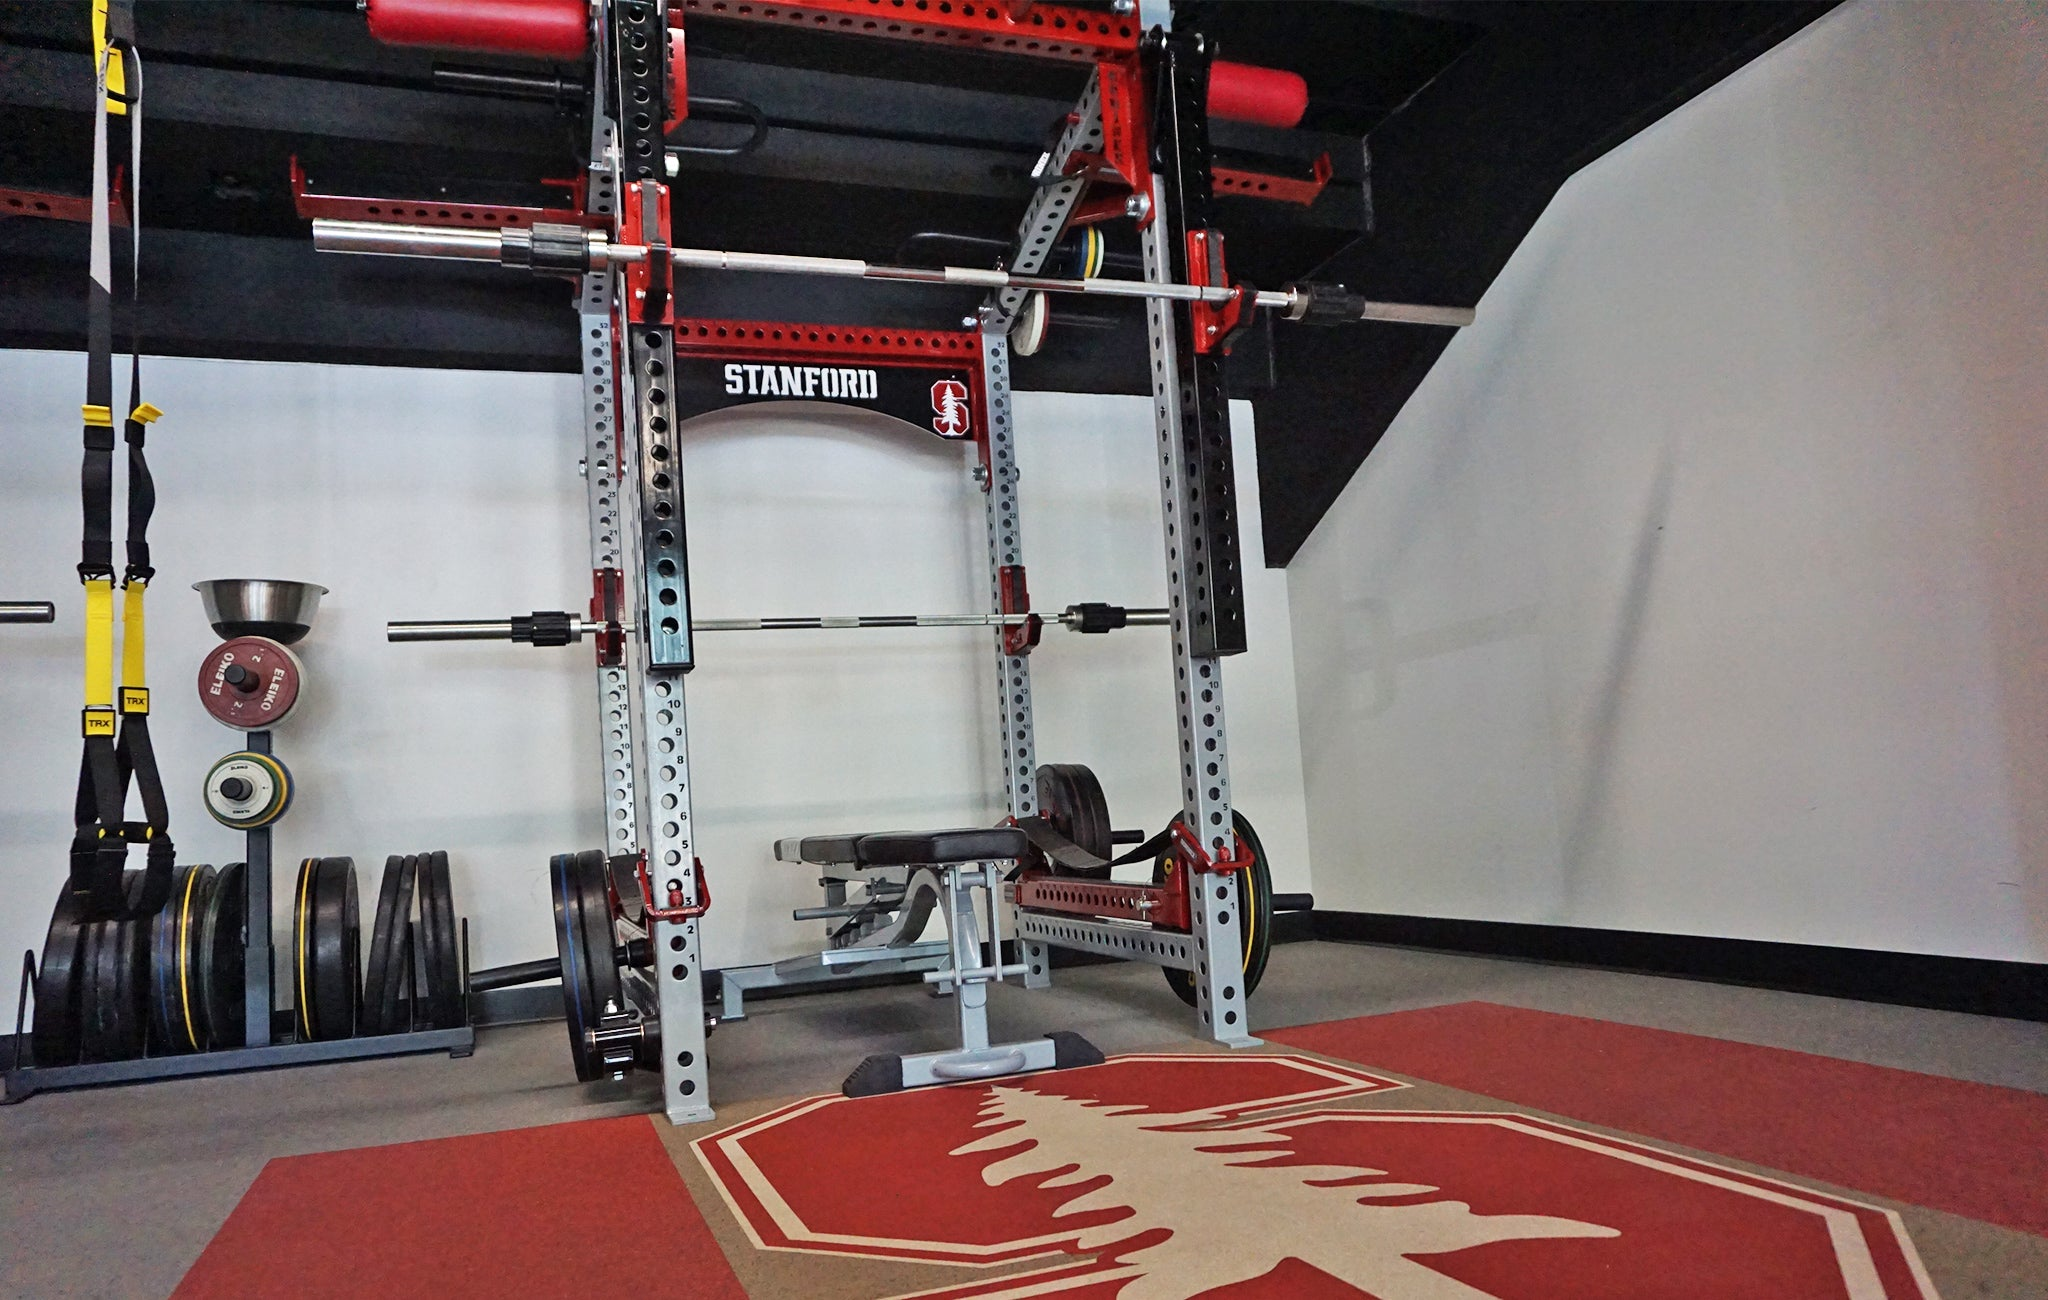 Stanford University strength and conditioning